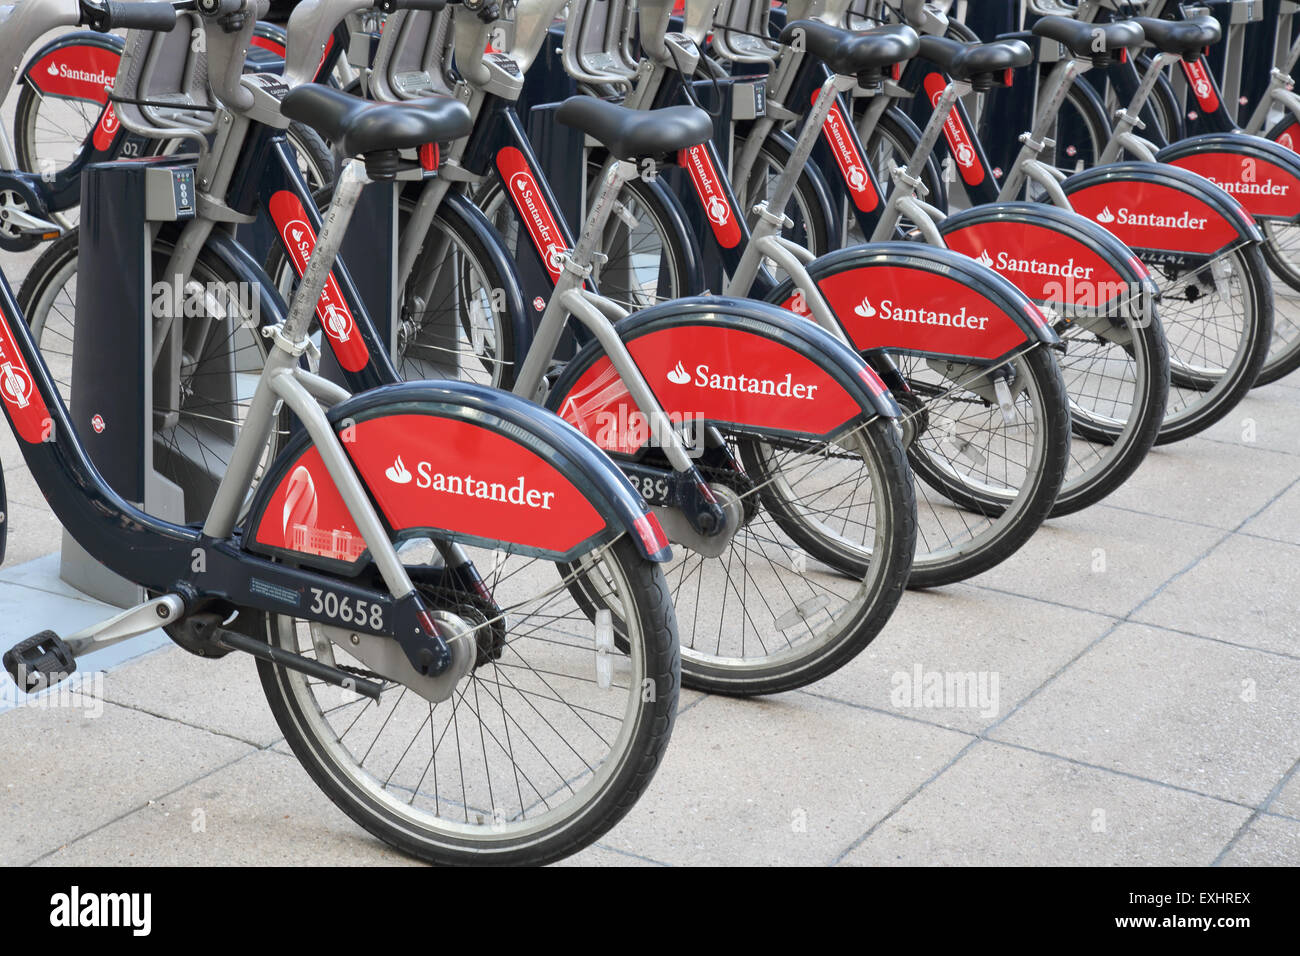 santander sponsored bikes for hire at canary wharf in london Stock Photo